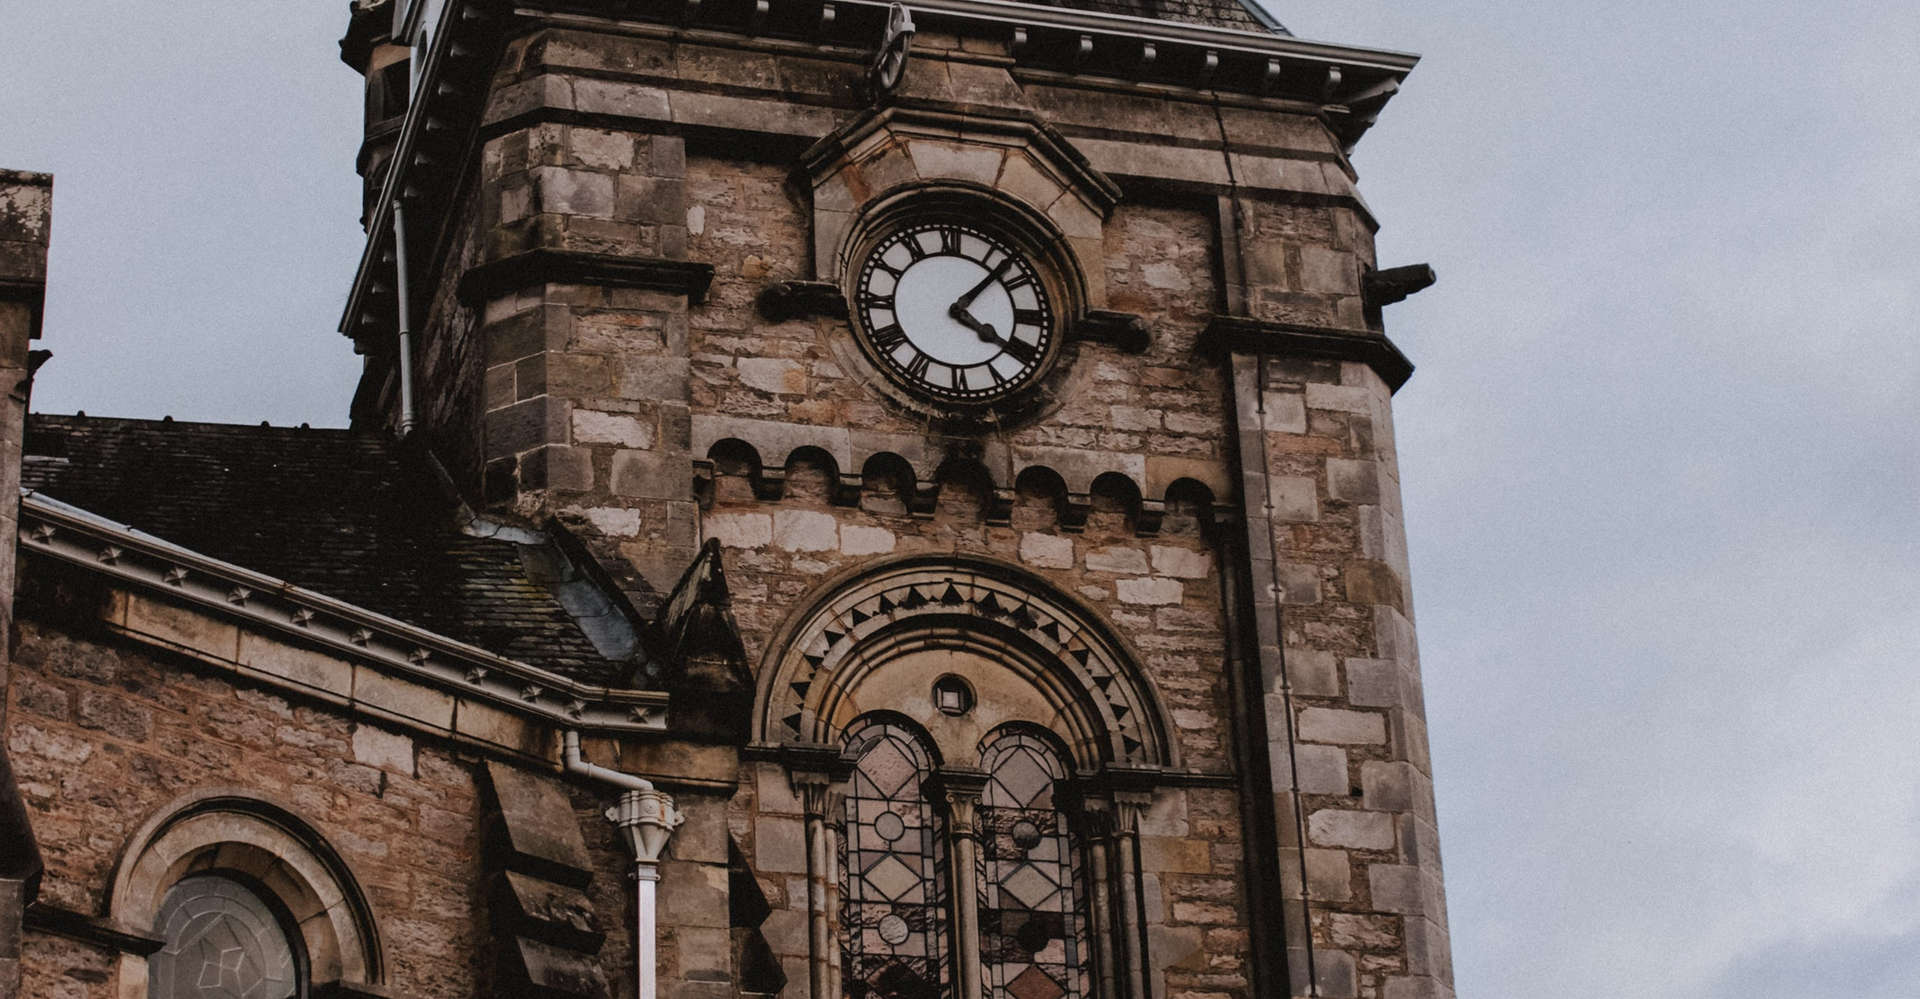 Pitlochry clock tower scotland seen on luxury private tour